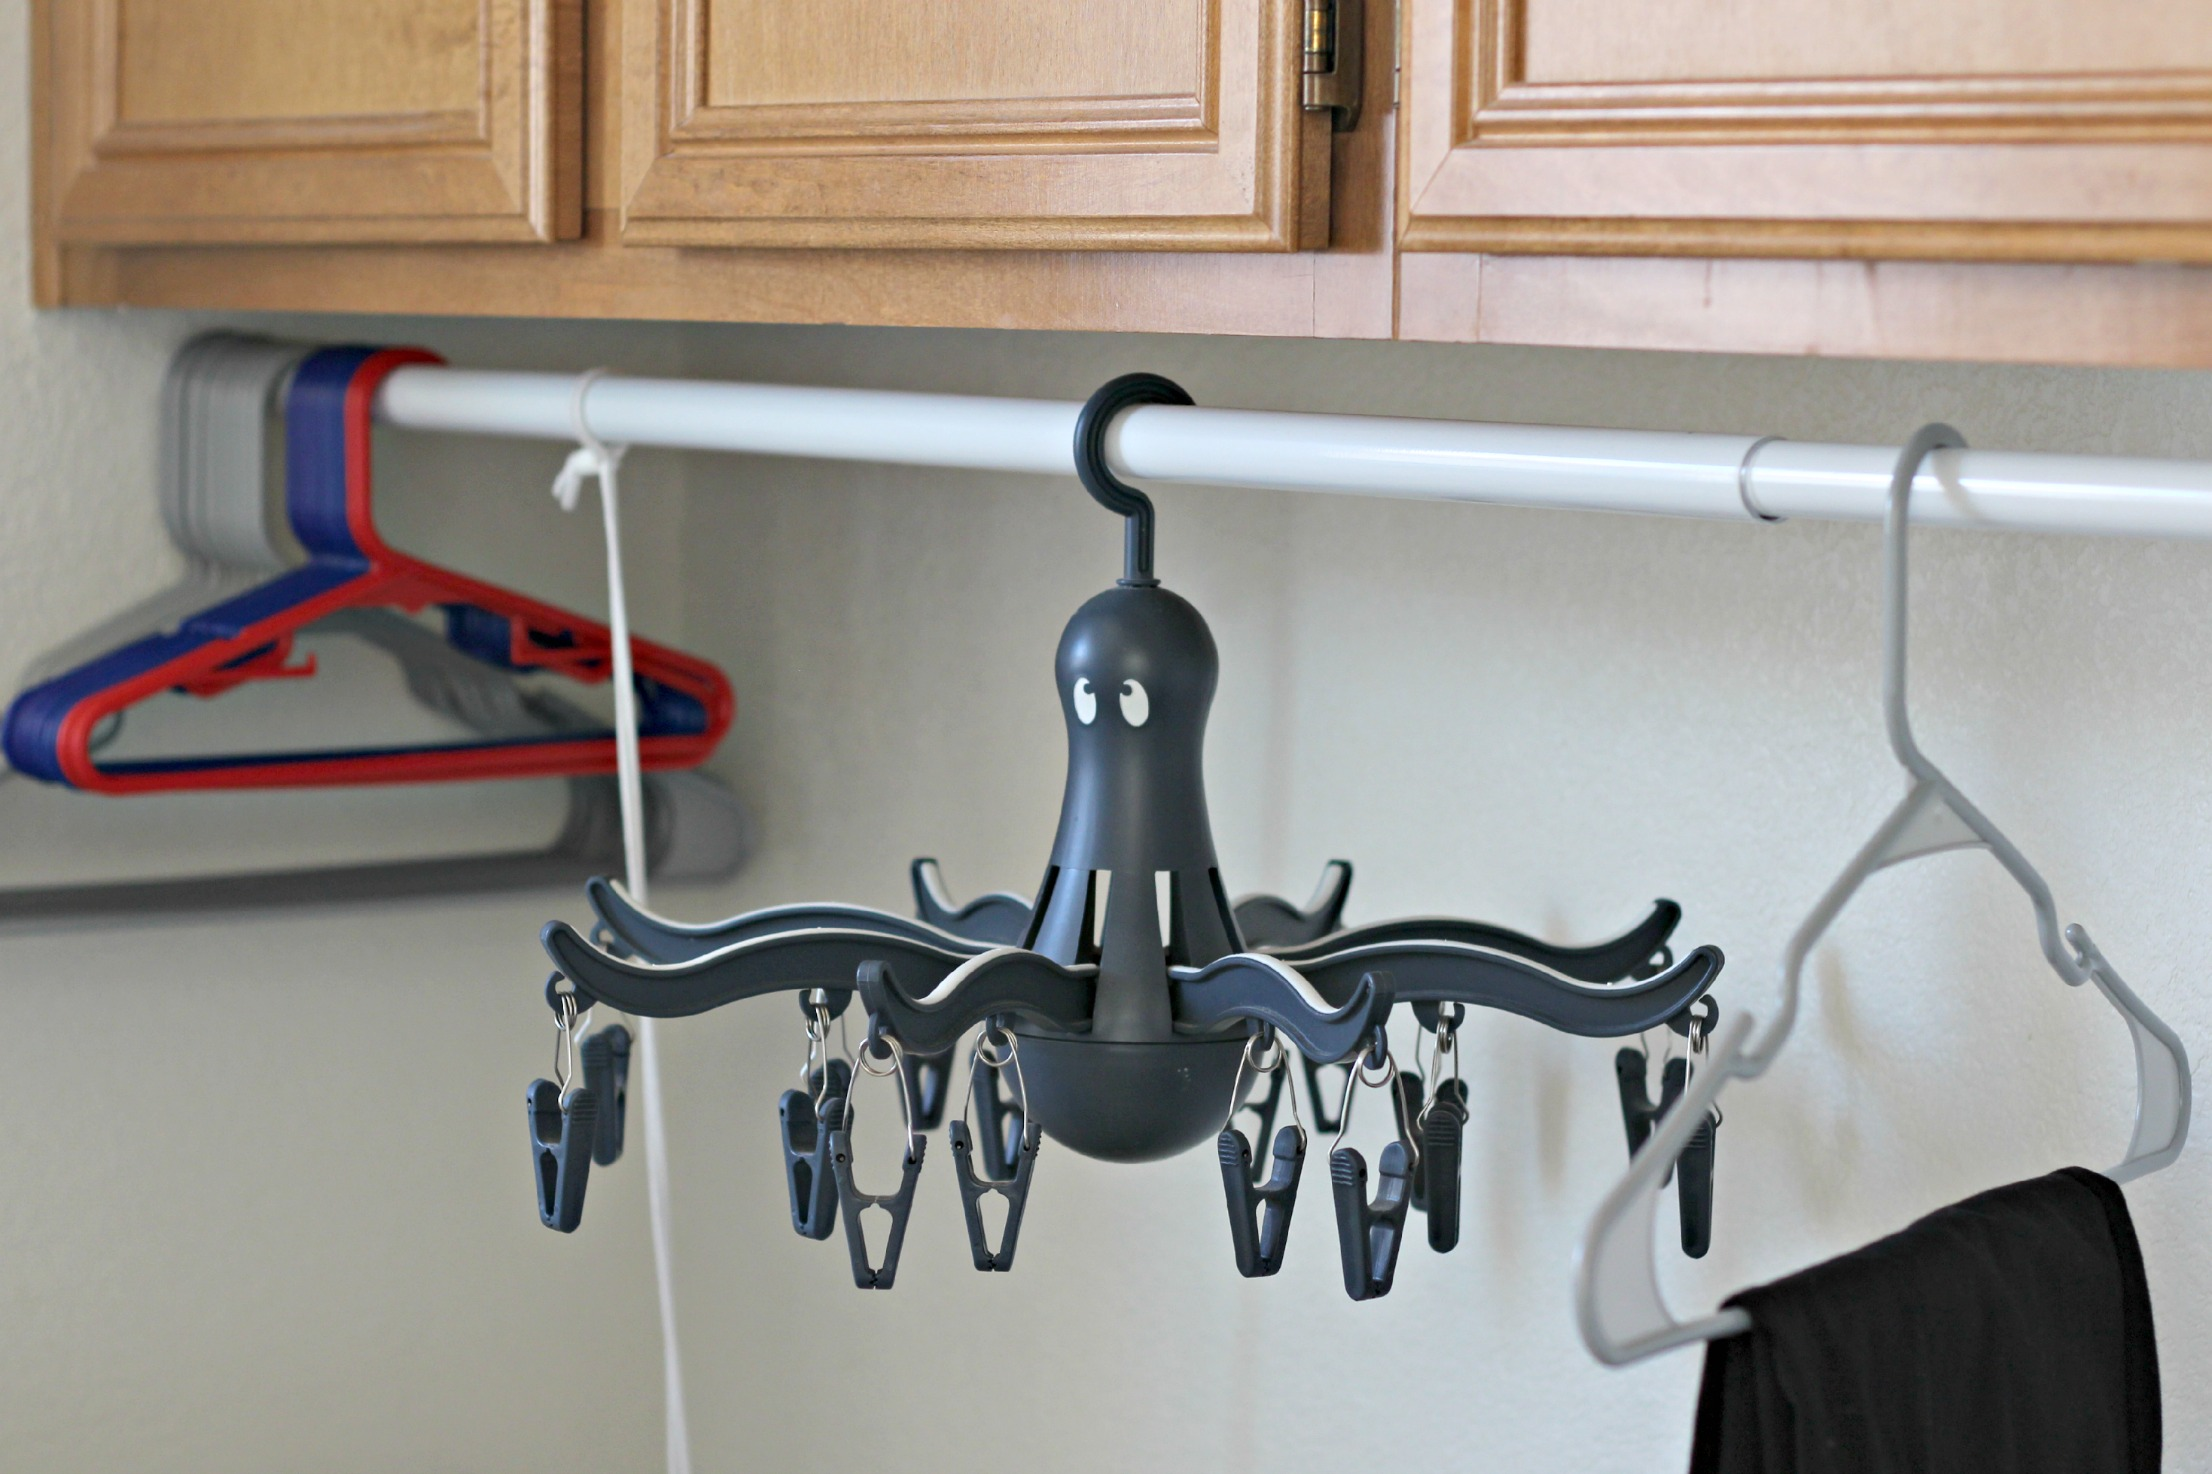 Laundry room essentials organize and decorate everything - Ironing board for small spaces decor ...